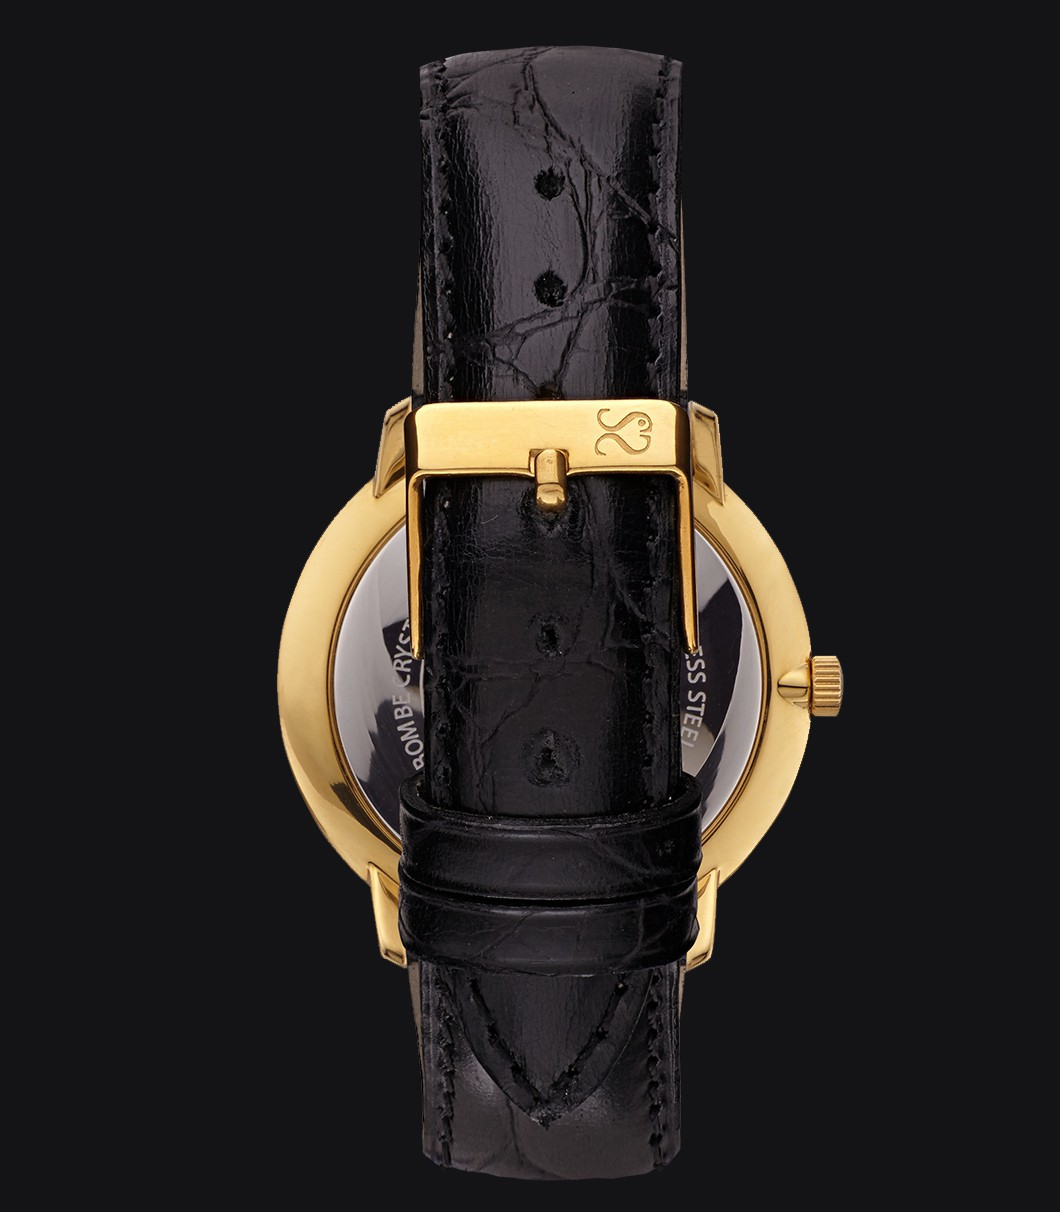 Reloj Clásico Dorado Fisherman Vintage Luxury Black